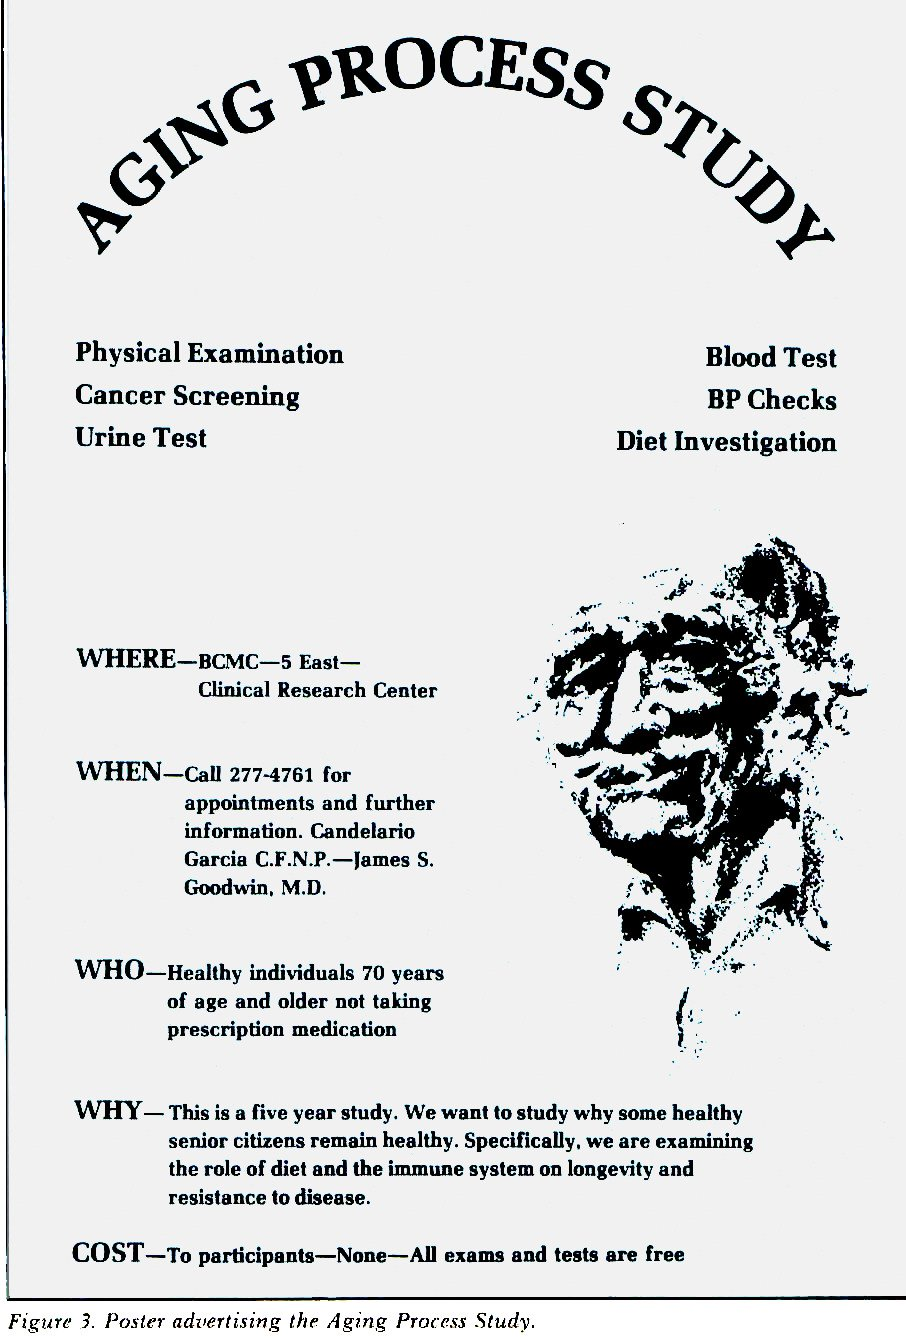 Figure 3. Poster advertising the Aging Process Study.